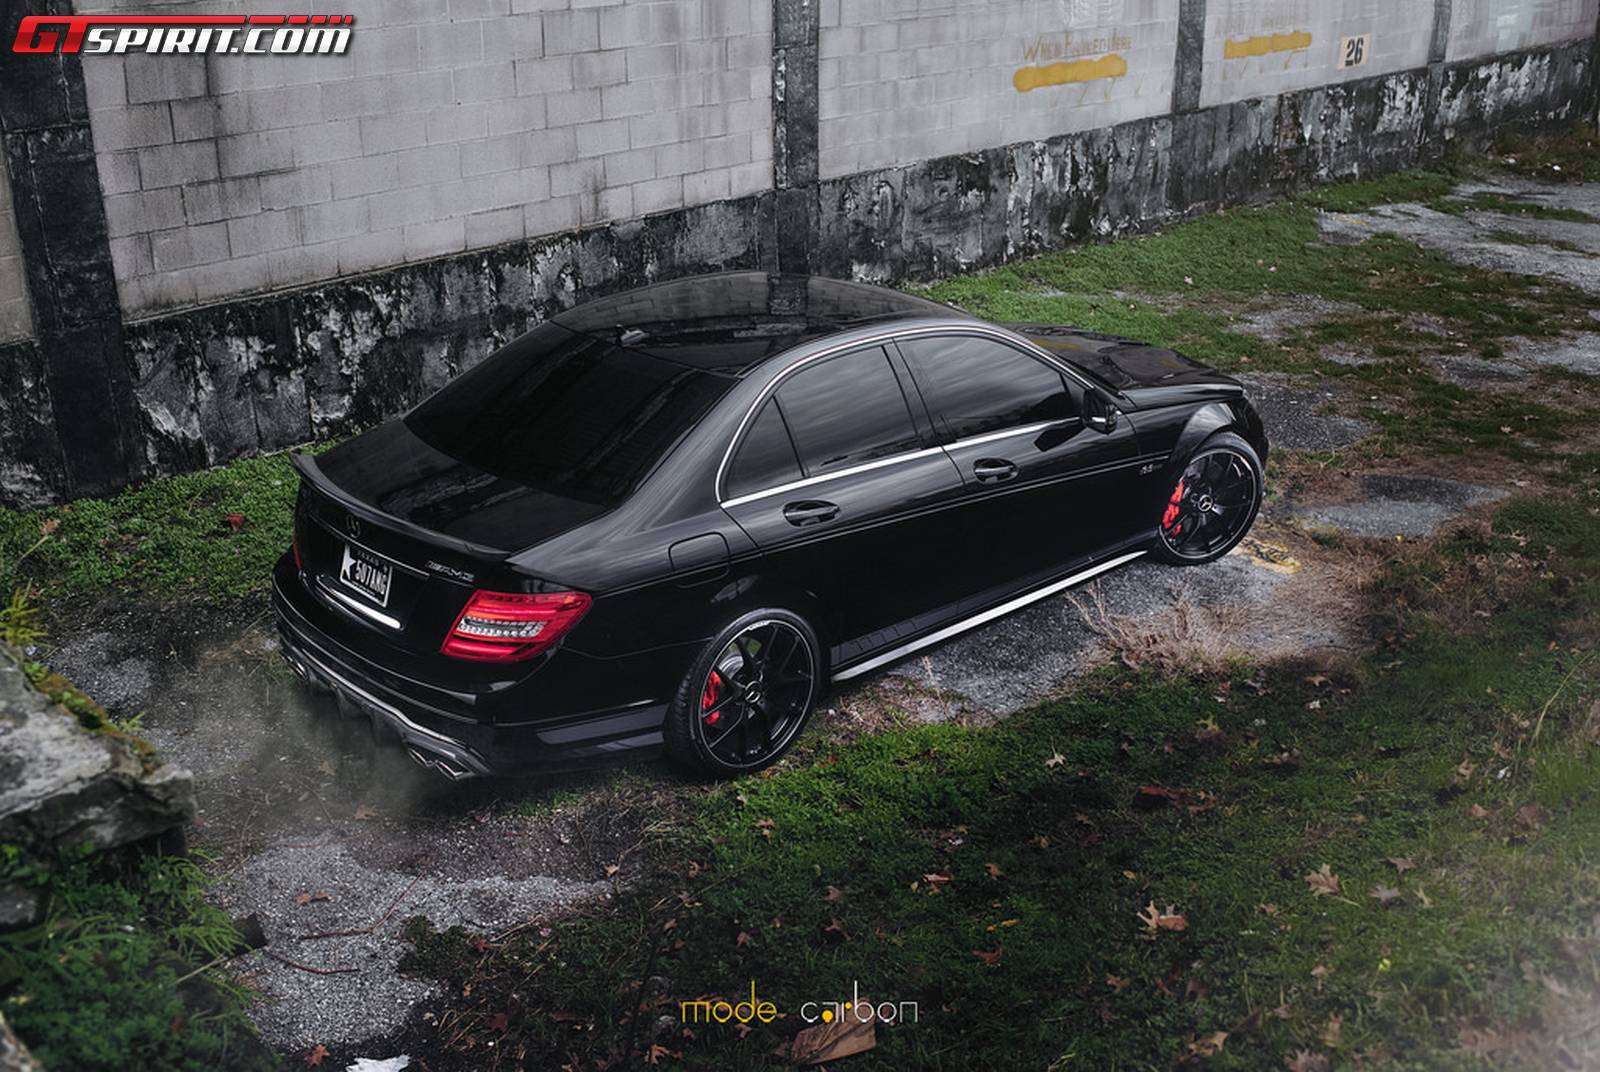 Mode carbon customizes mercedes c63 amg edition 507 for How much is a mercedes benz c63 amg